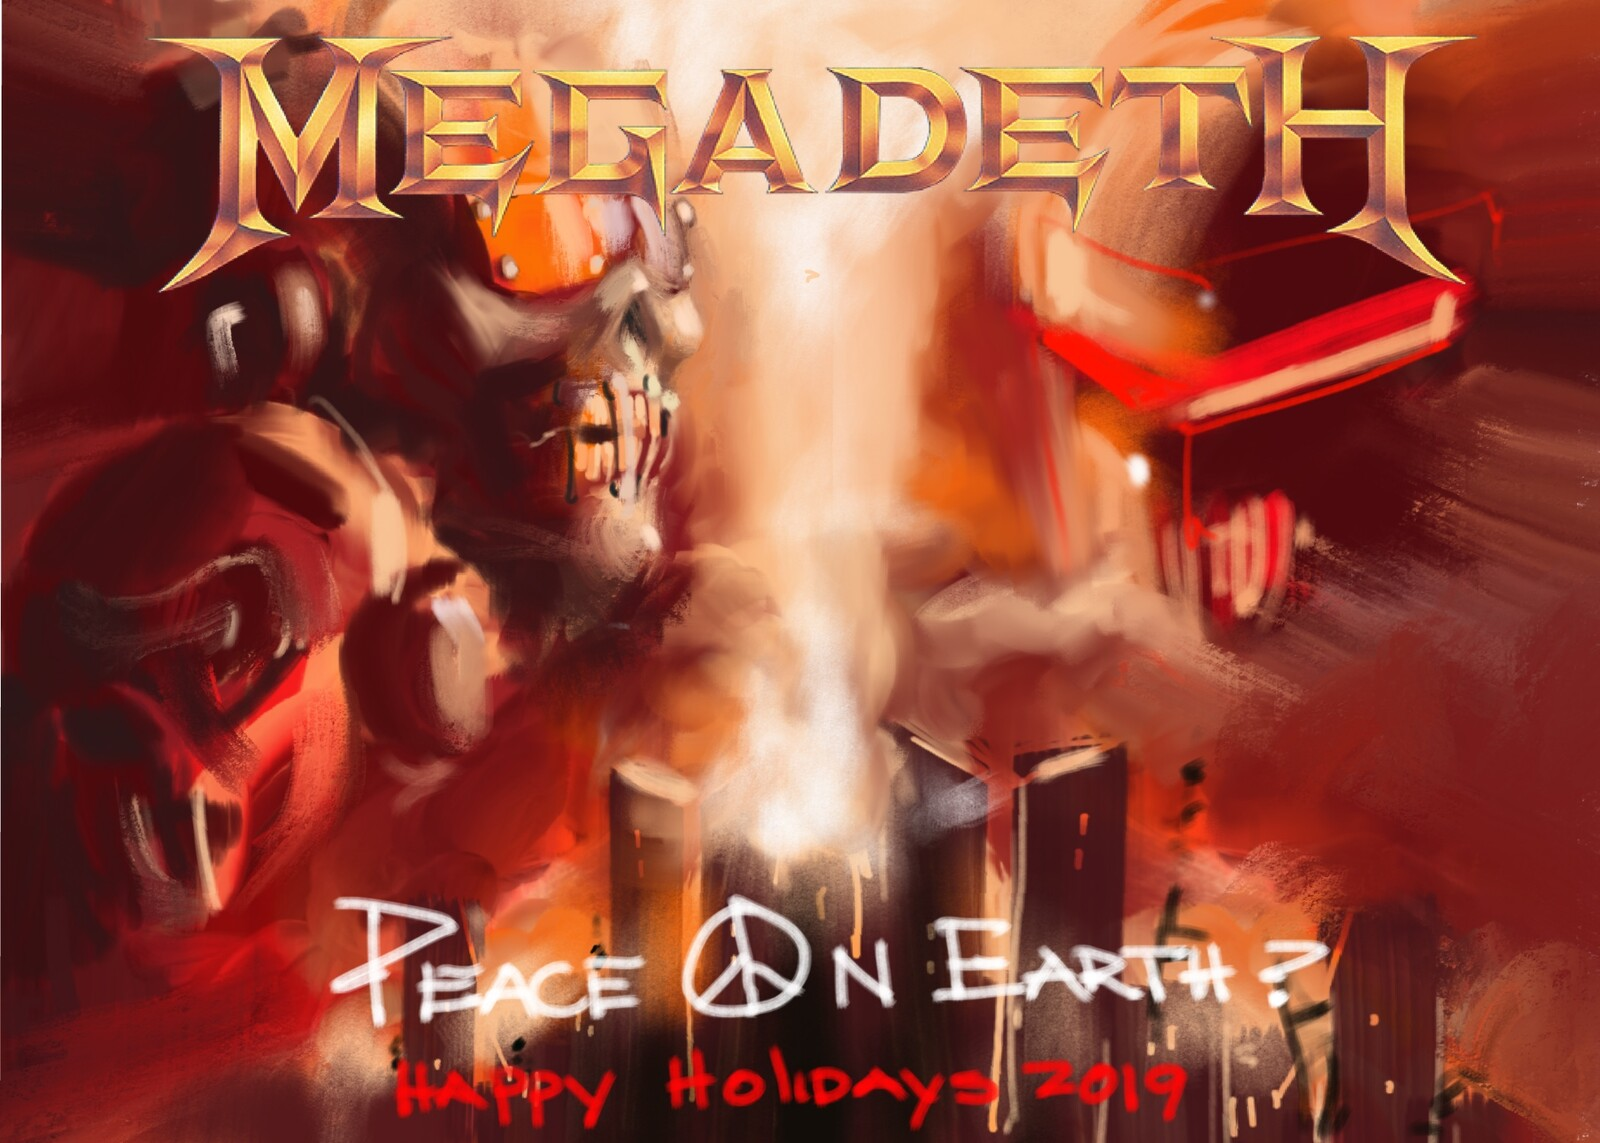 Megadeth-Peace on Earth?  Greeting card concept